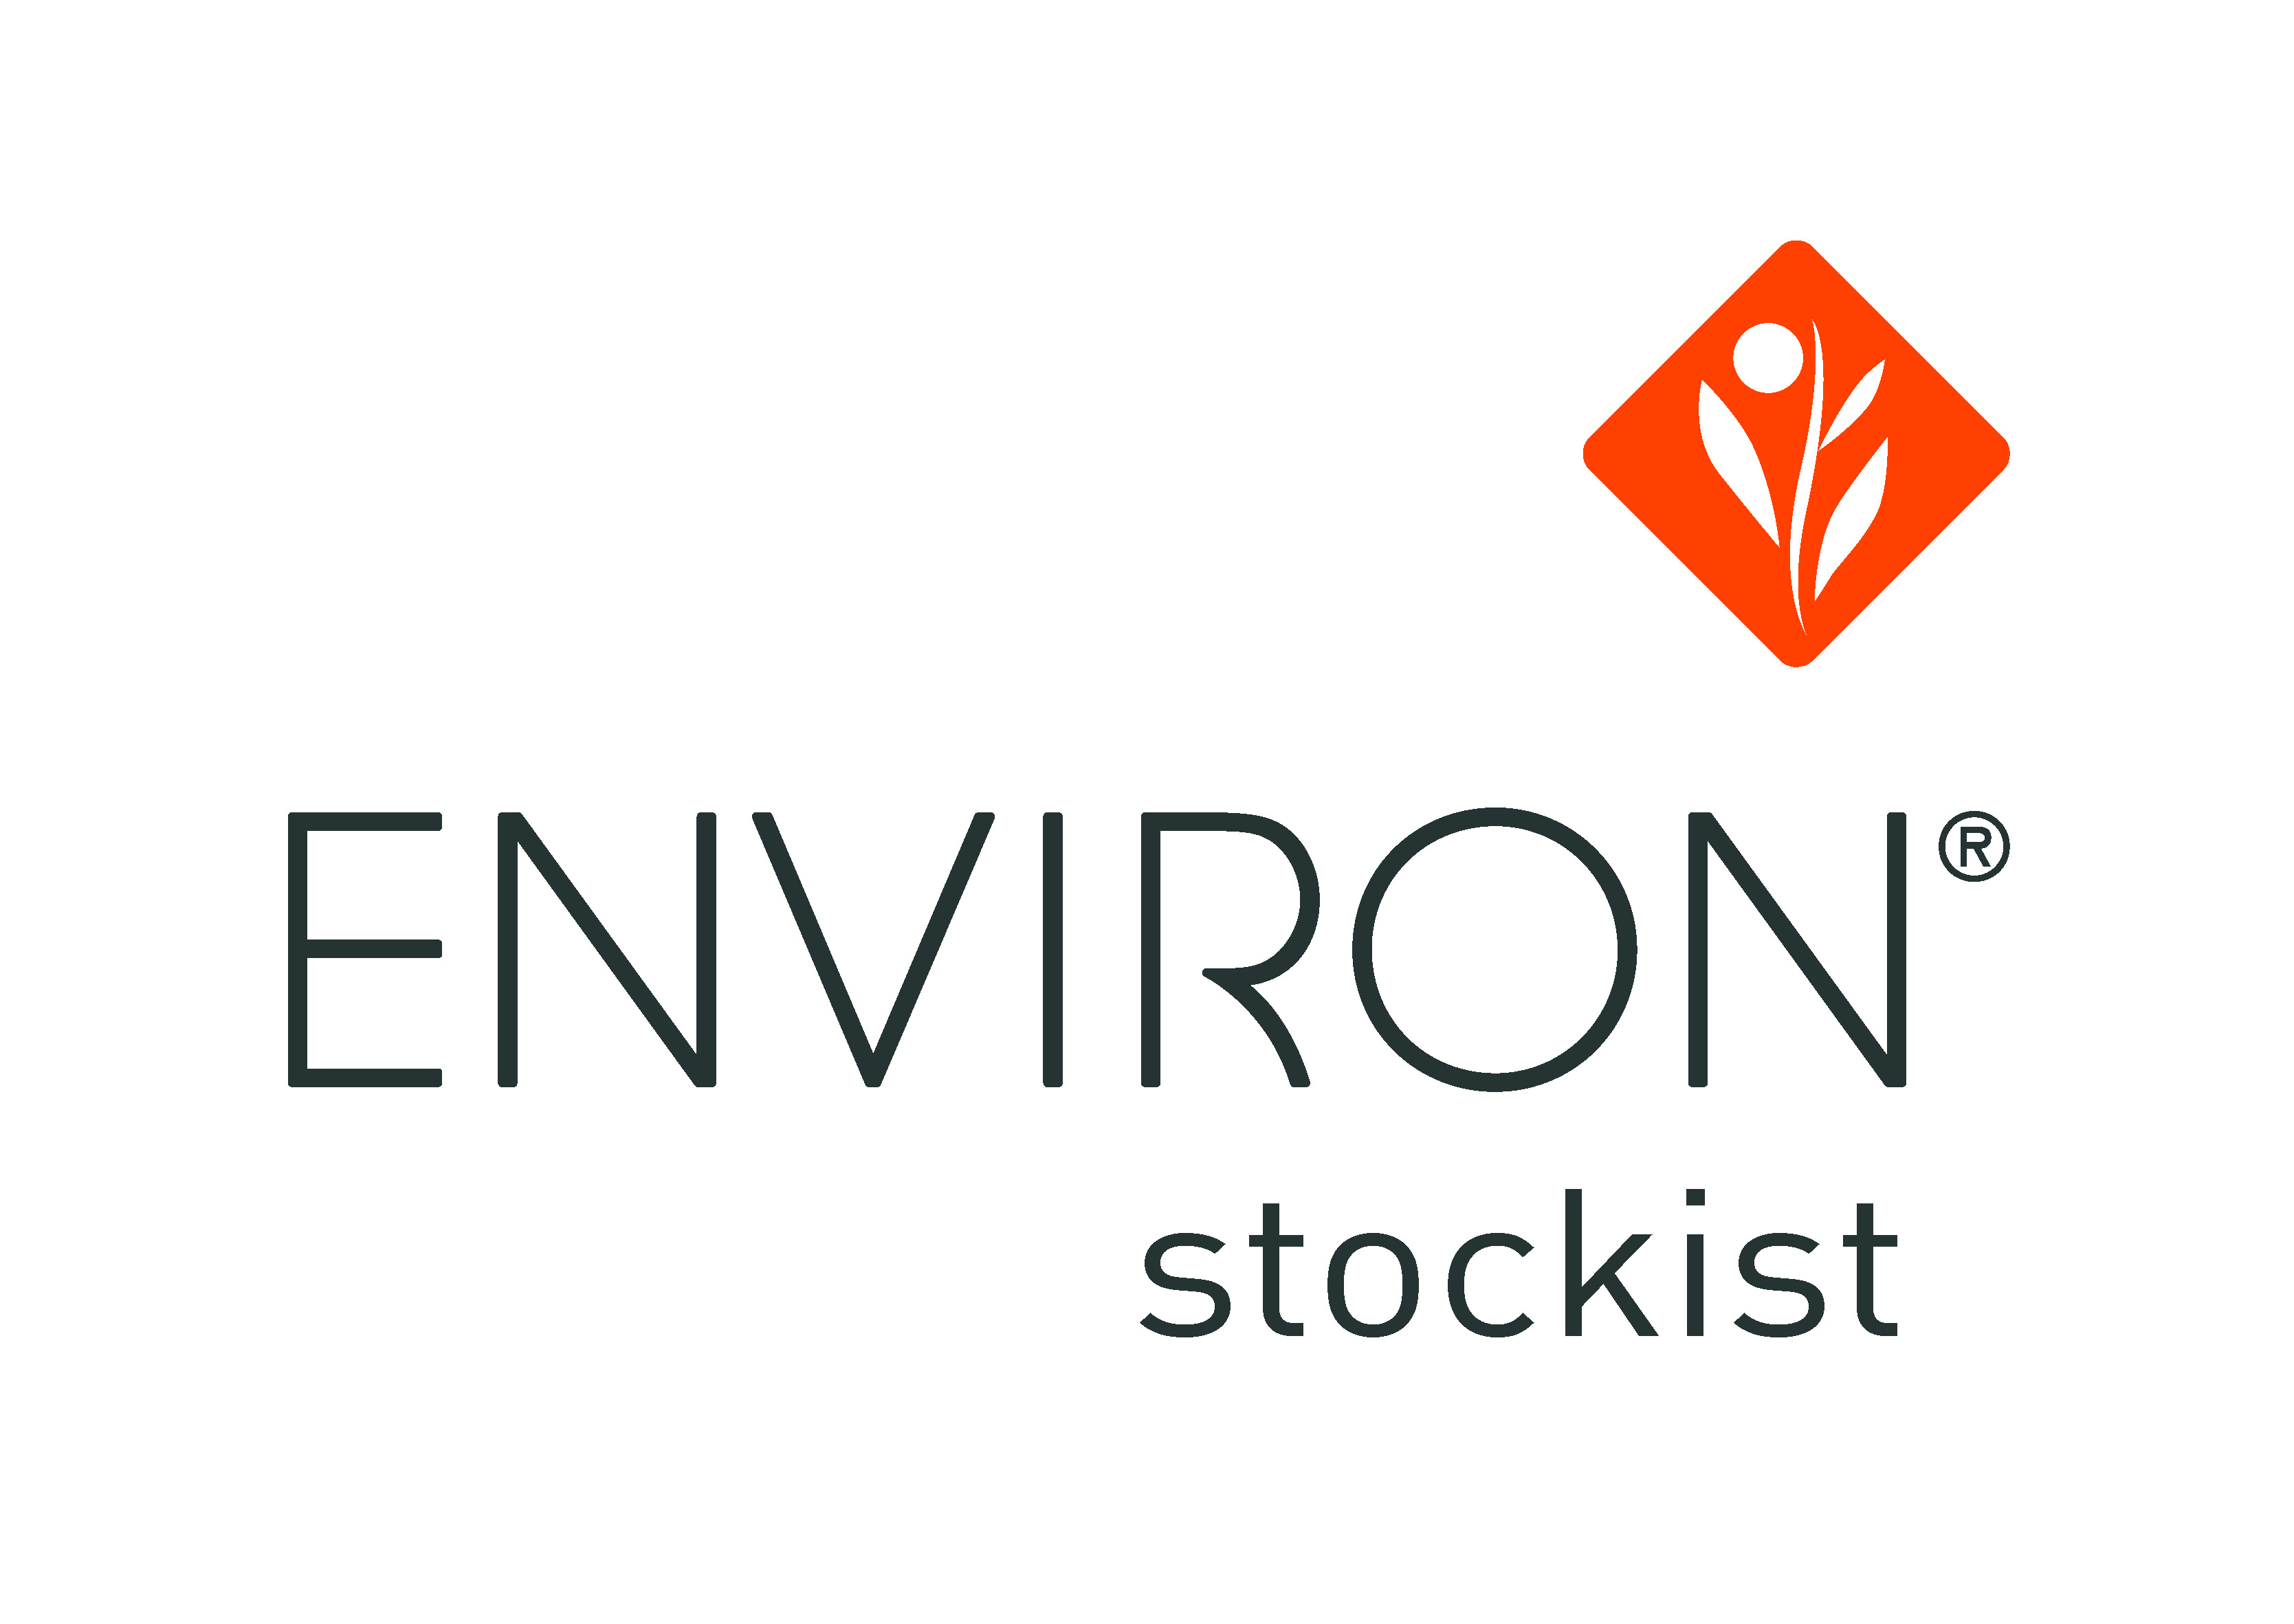 Environ Stock List Logo